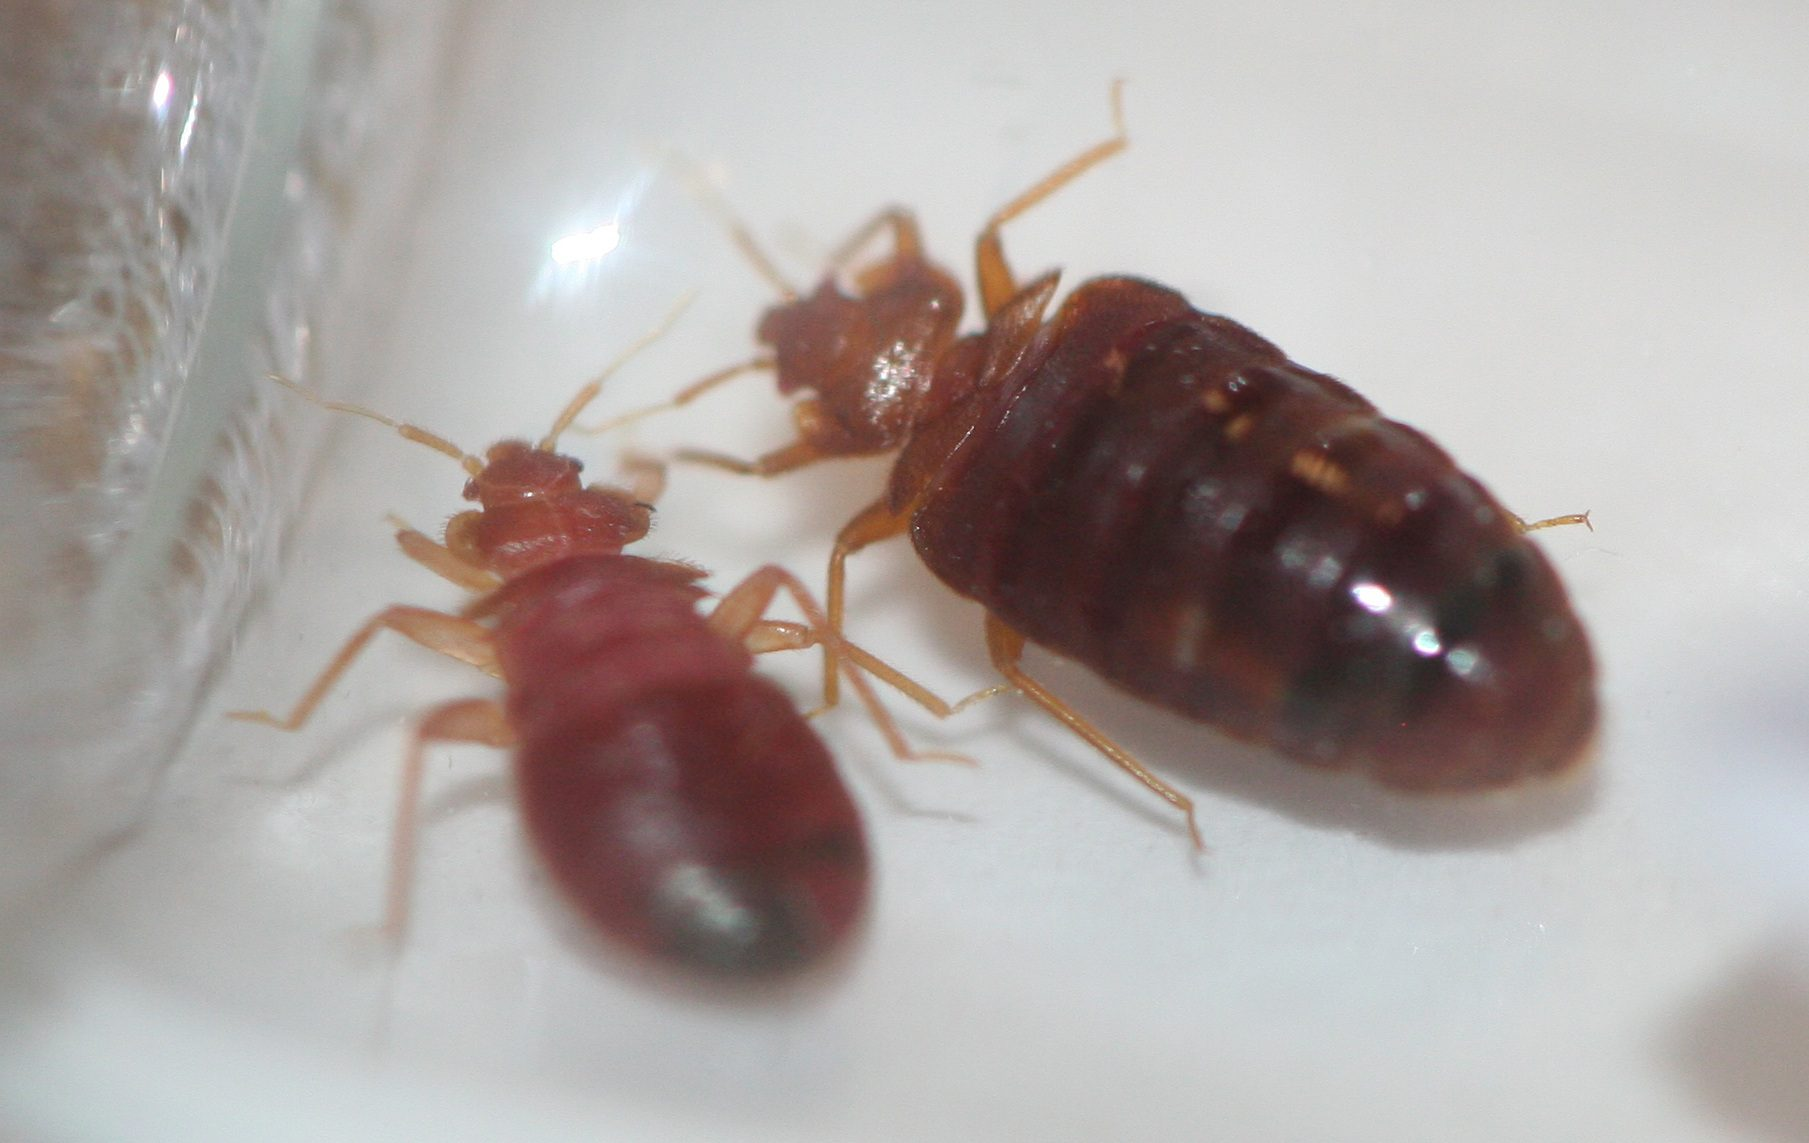 Bed Bug Exterminator in Bay Area, Bed Bug Pest Control by ... Pictures Of Bed Bugs